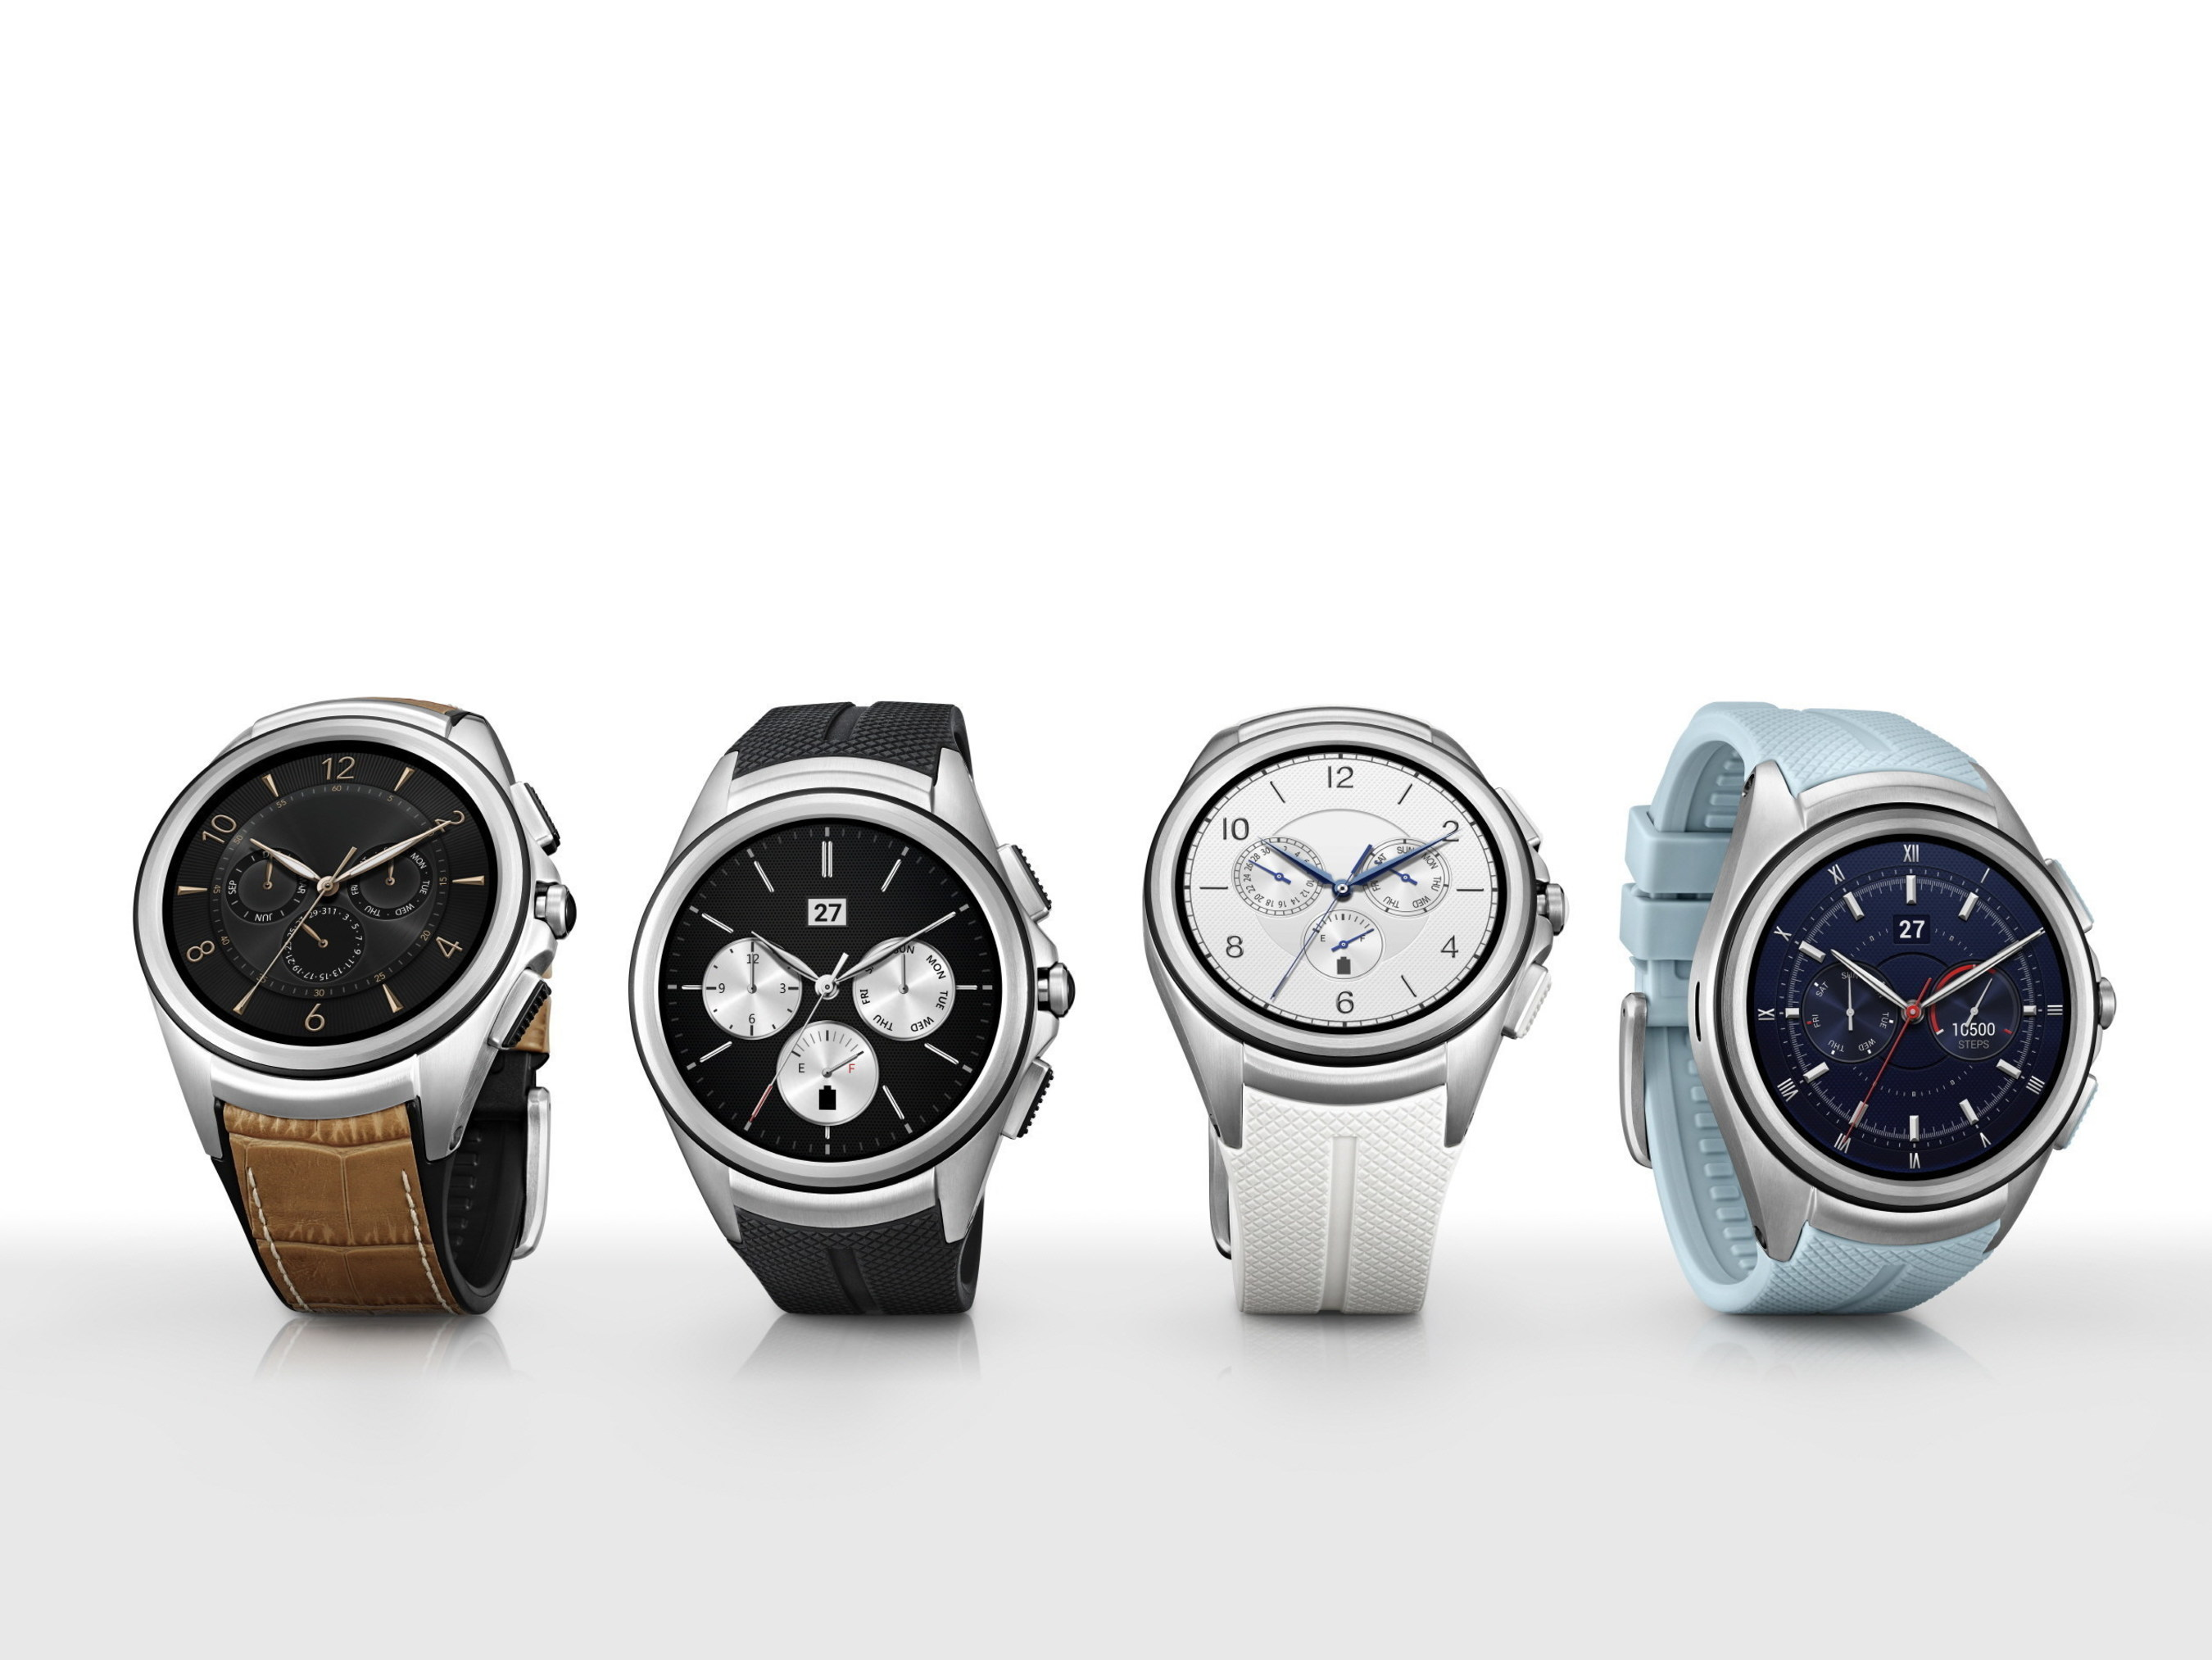 First Cellular Android Wear Smartwatch Previewed At LG's Premiere For V10